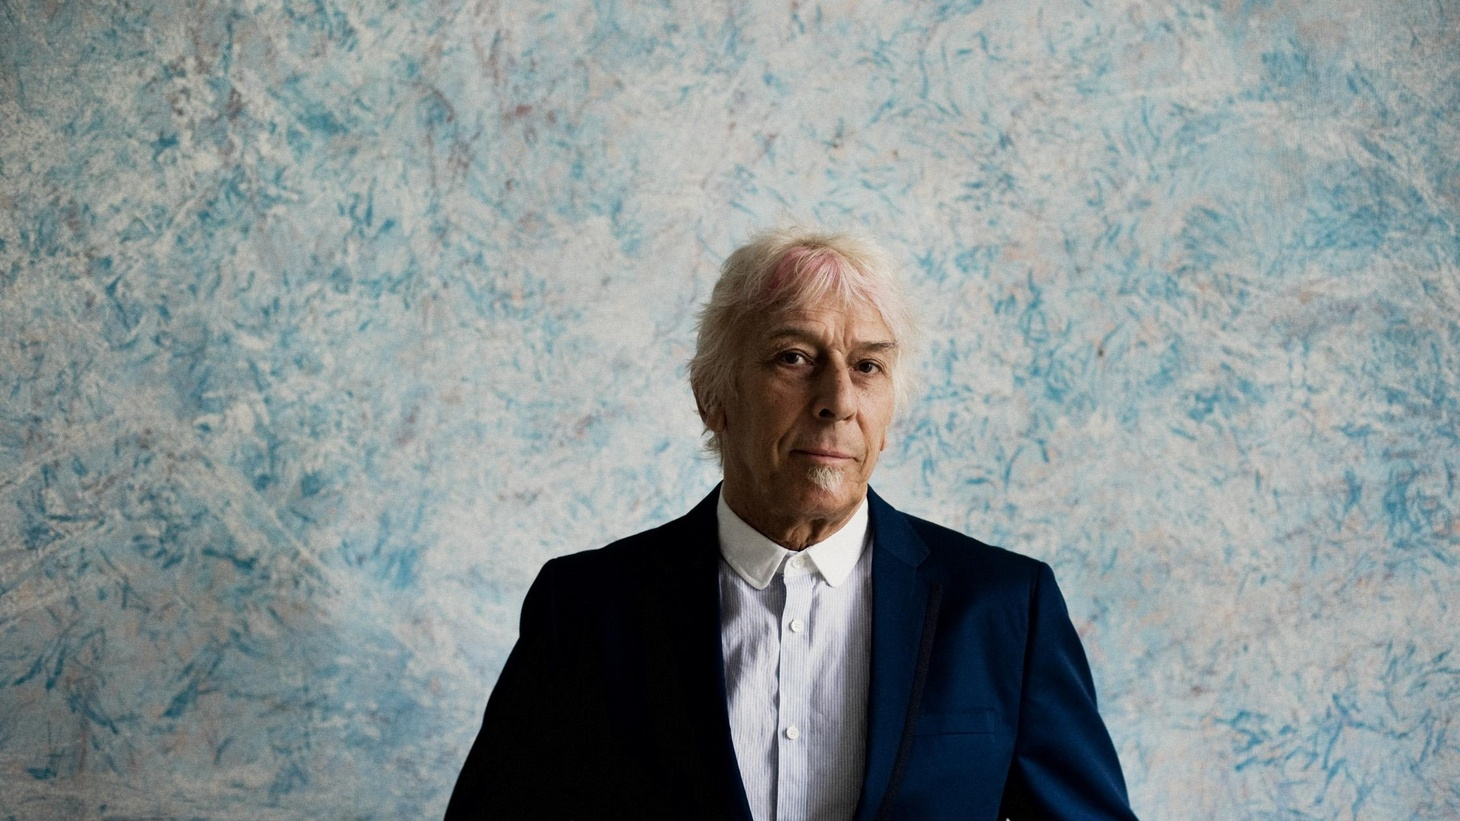 Founding member of Velvet Underground and Rock n Roll Hall of Famer John Cale makes himself comfortable at the piano whether he's performing classical music or rock.